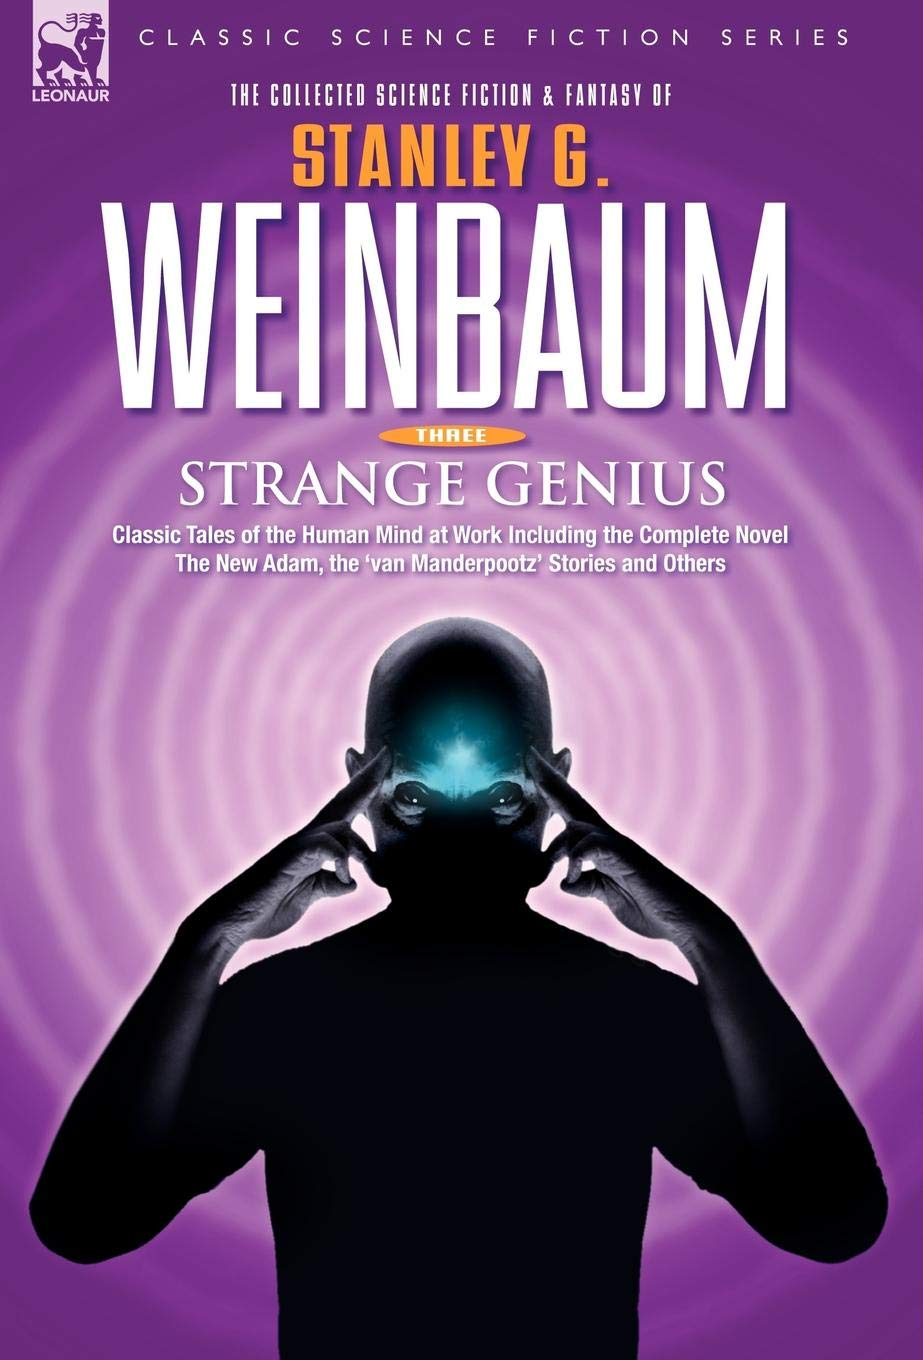 STRANGE GENIUS - Classic Tales of the Human Mind at Work Including the Complete Novel The New Adam, the 'van Manderpootz' Stories and Others (v. 3) pdf epub